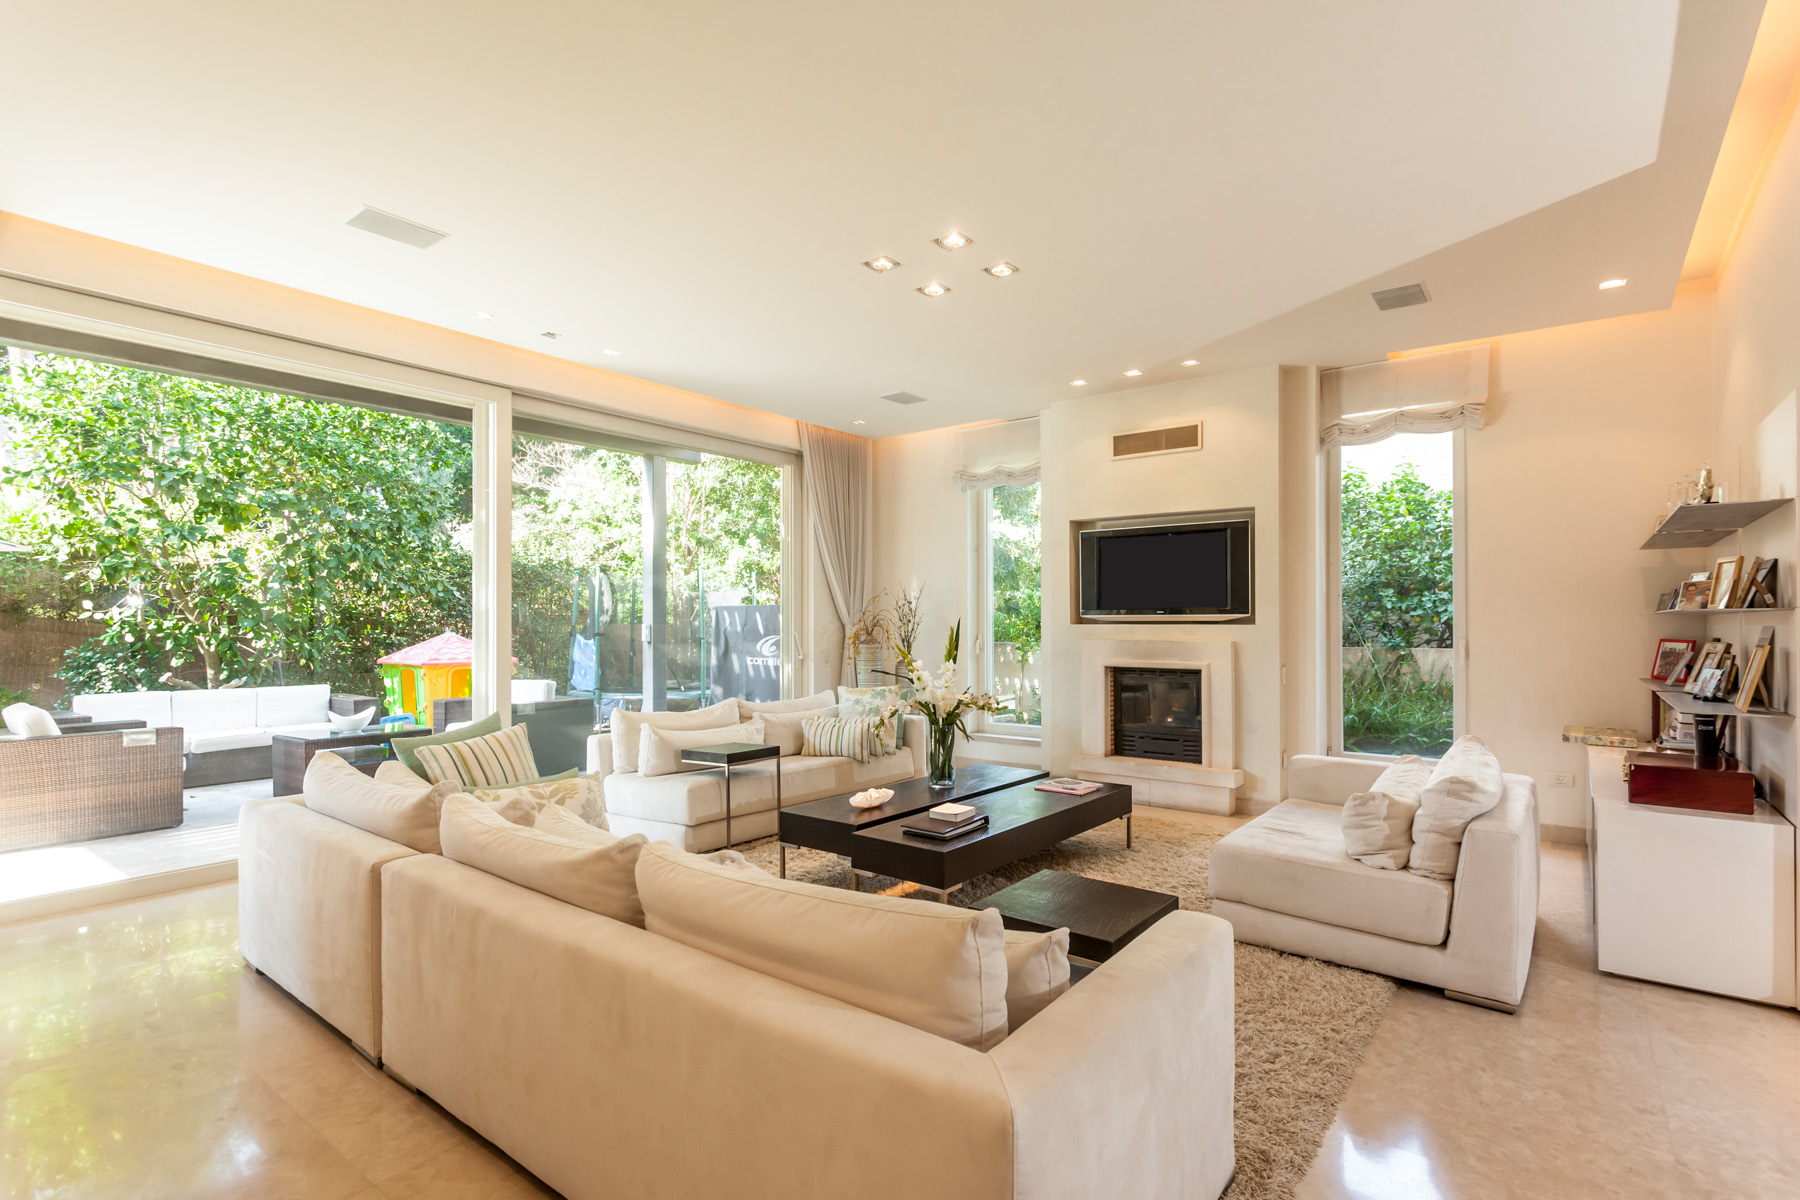 Single Family Home for Sale at Elegant bright and functional house in Ramat Gan Ramat Gan, Israel Israel